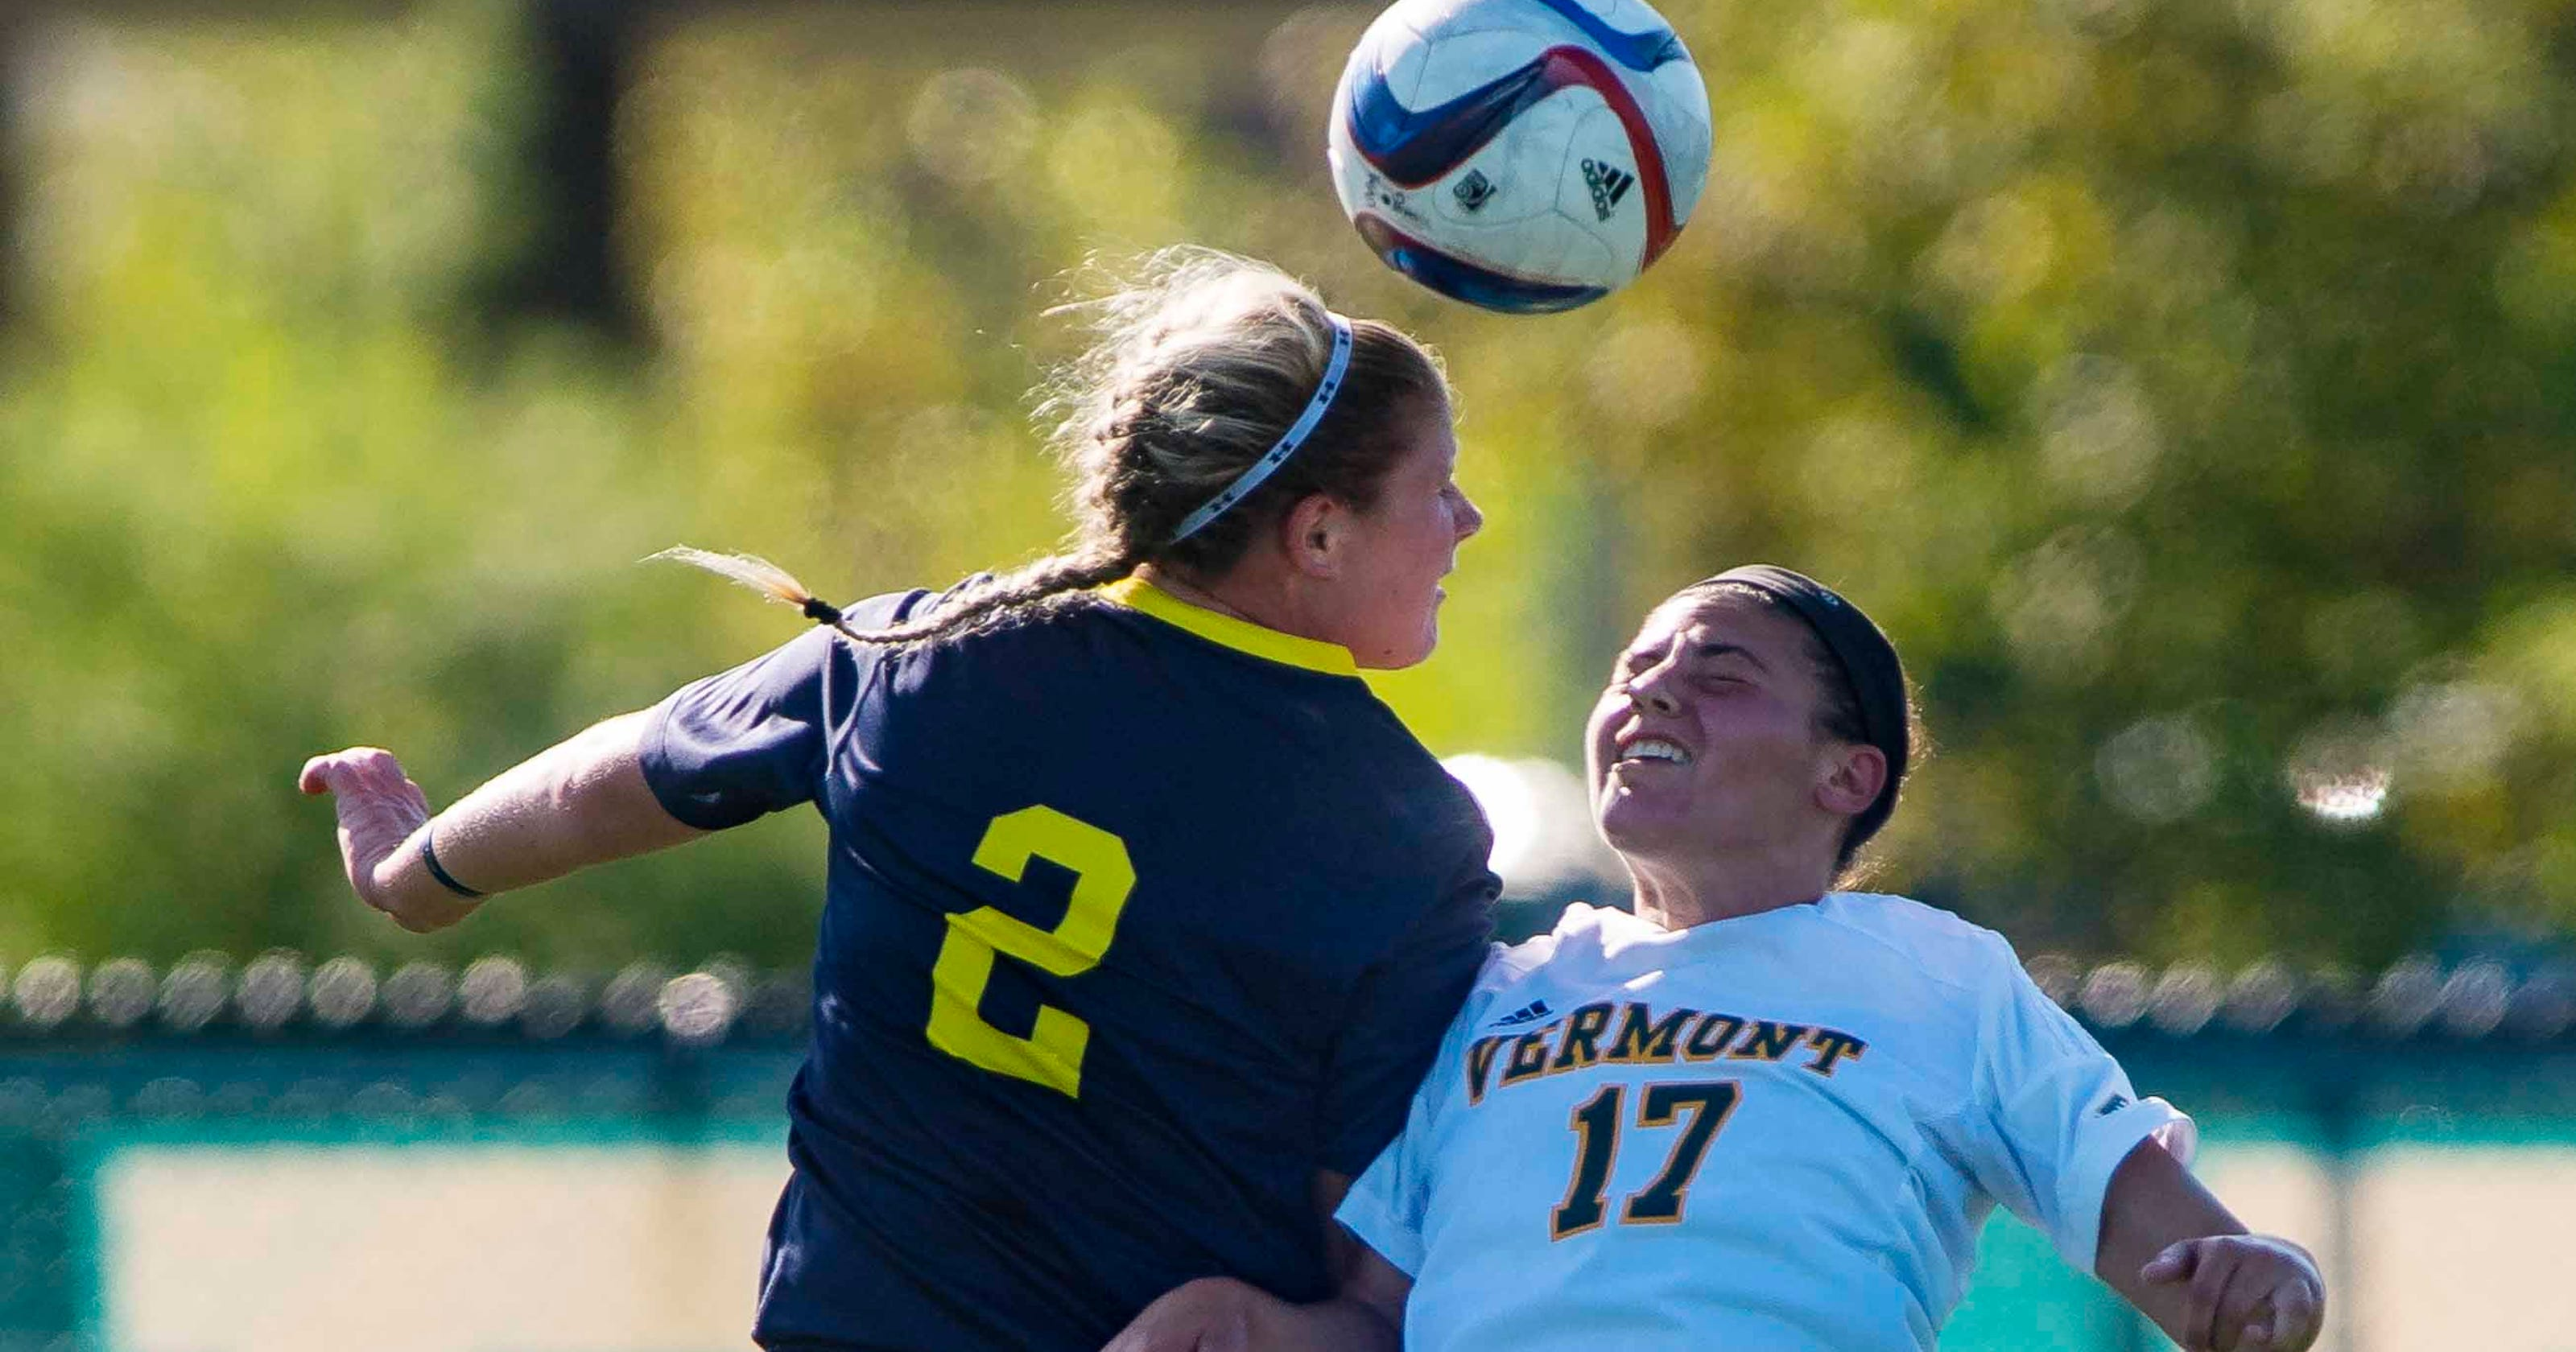 College roundup: UVM held in draw with Marist